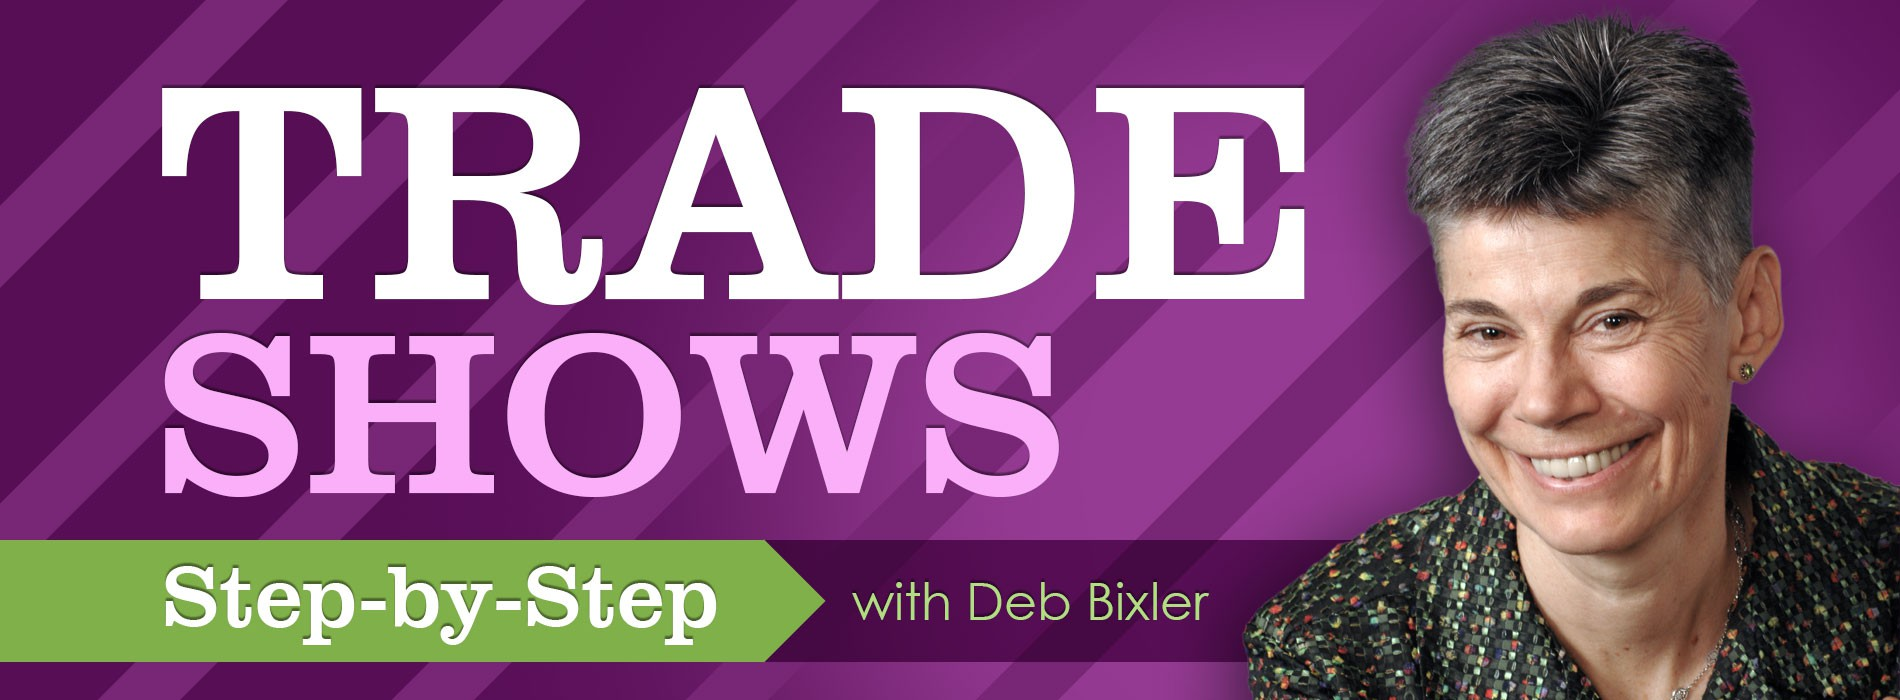 1900x700 Trade Shows with Deb Bixler